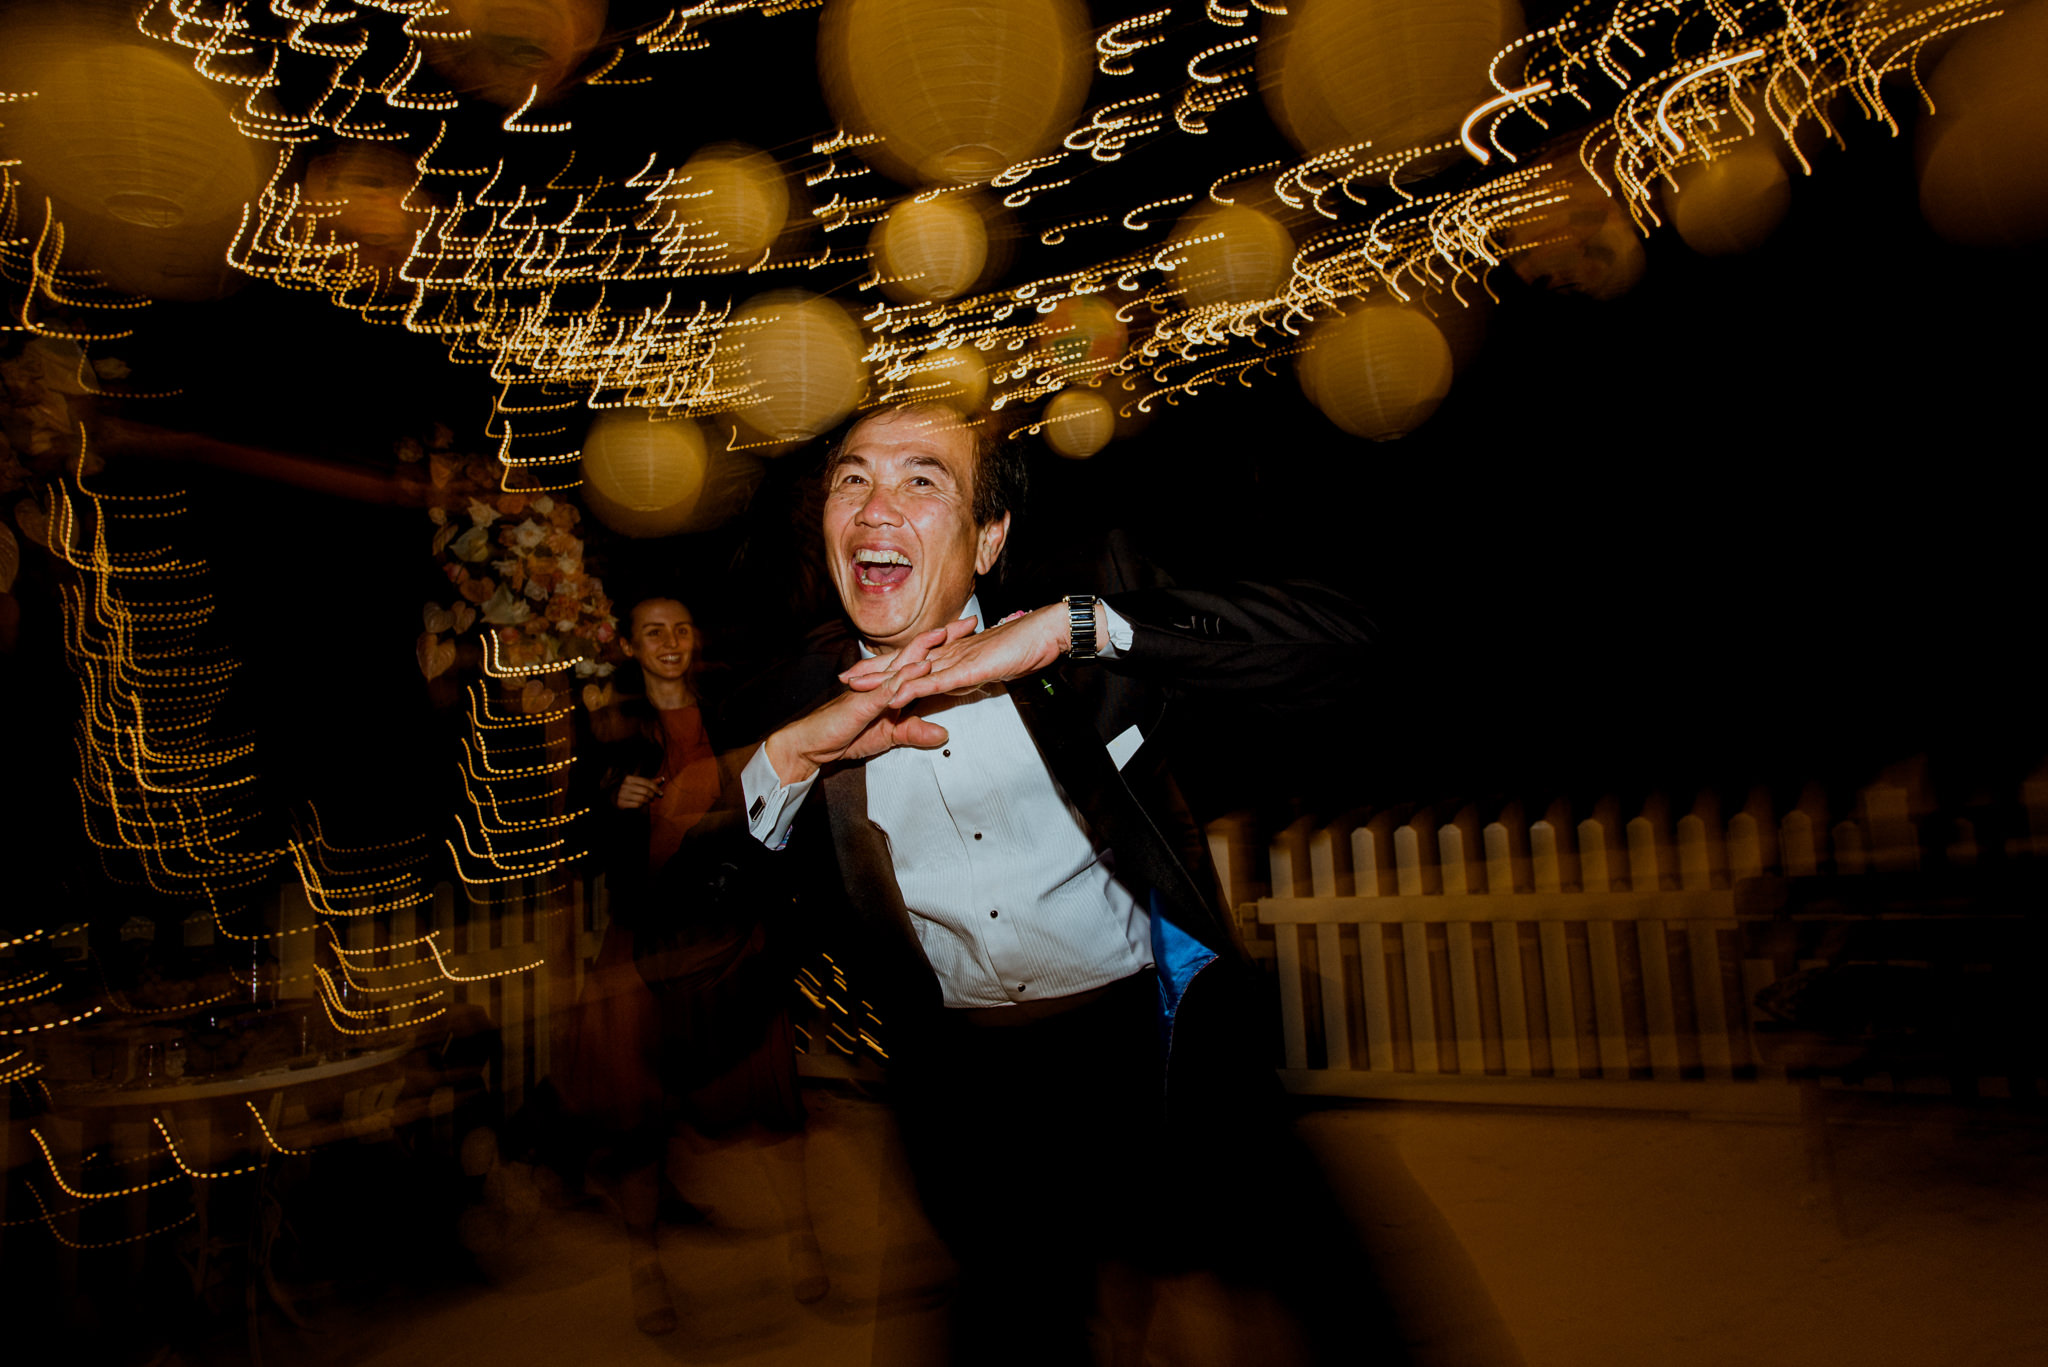 Party shot of a man dancing